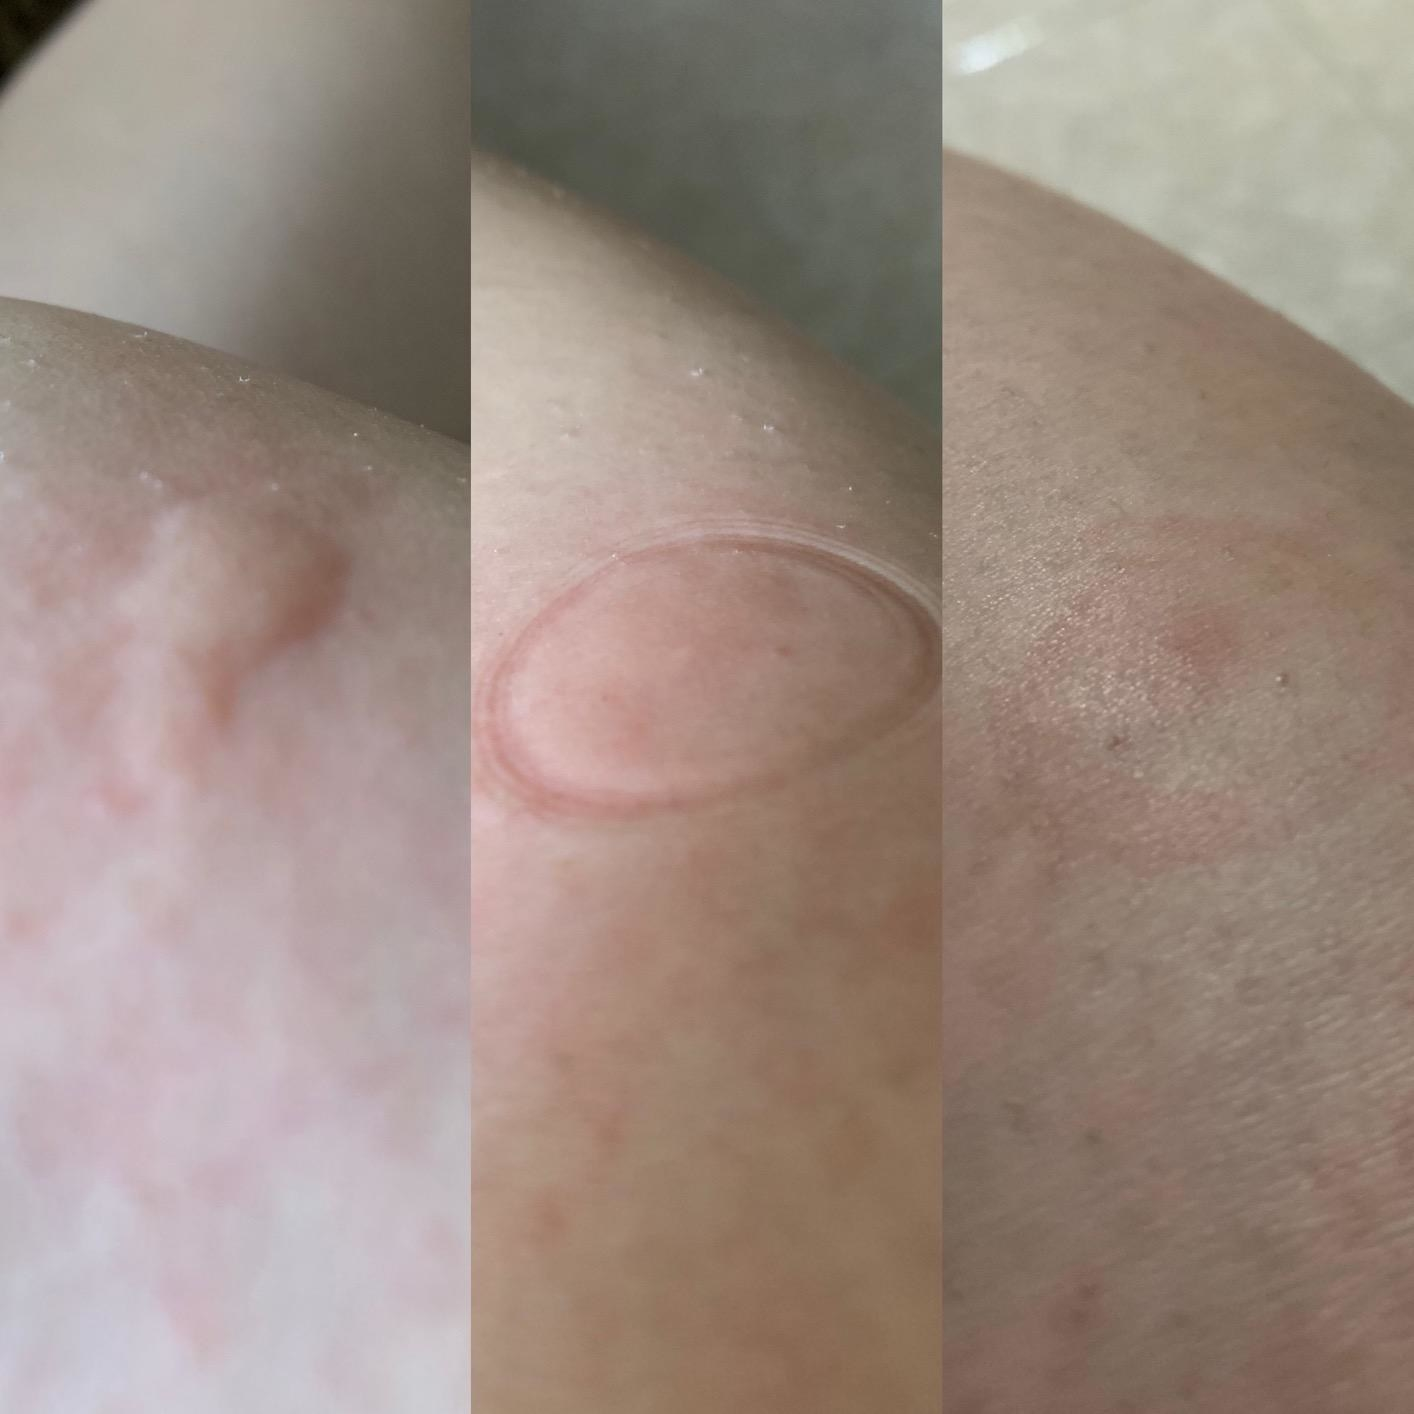 A reviewer's bug bite in three images: the bite, the bite immediately after using the tool with a circular mark, and after with reduced swelling